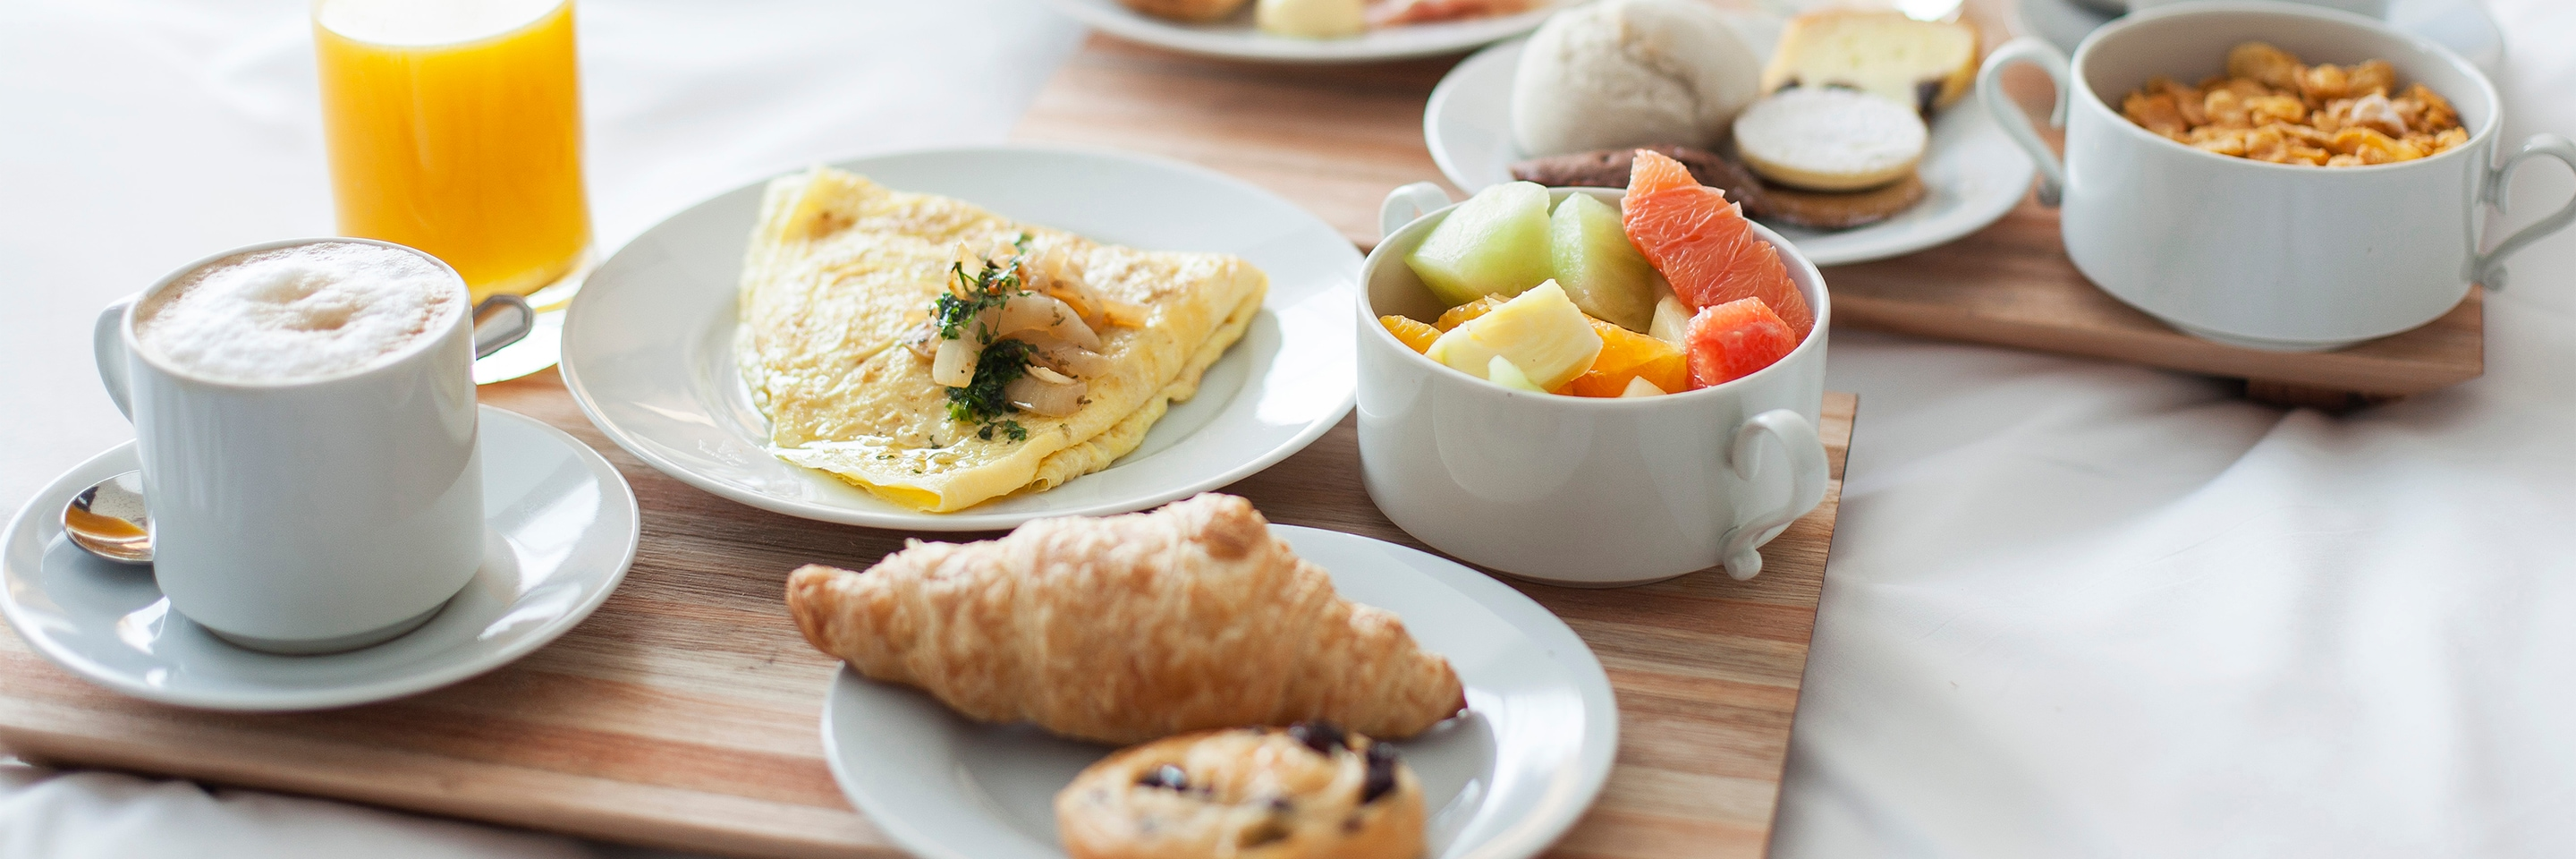 Hotel breakfast - omelet, fruit, croissant, coffee, orange juice and more.